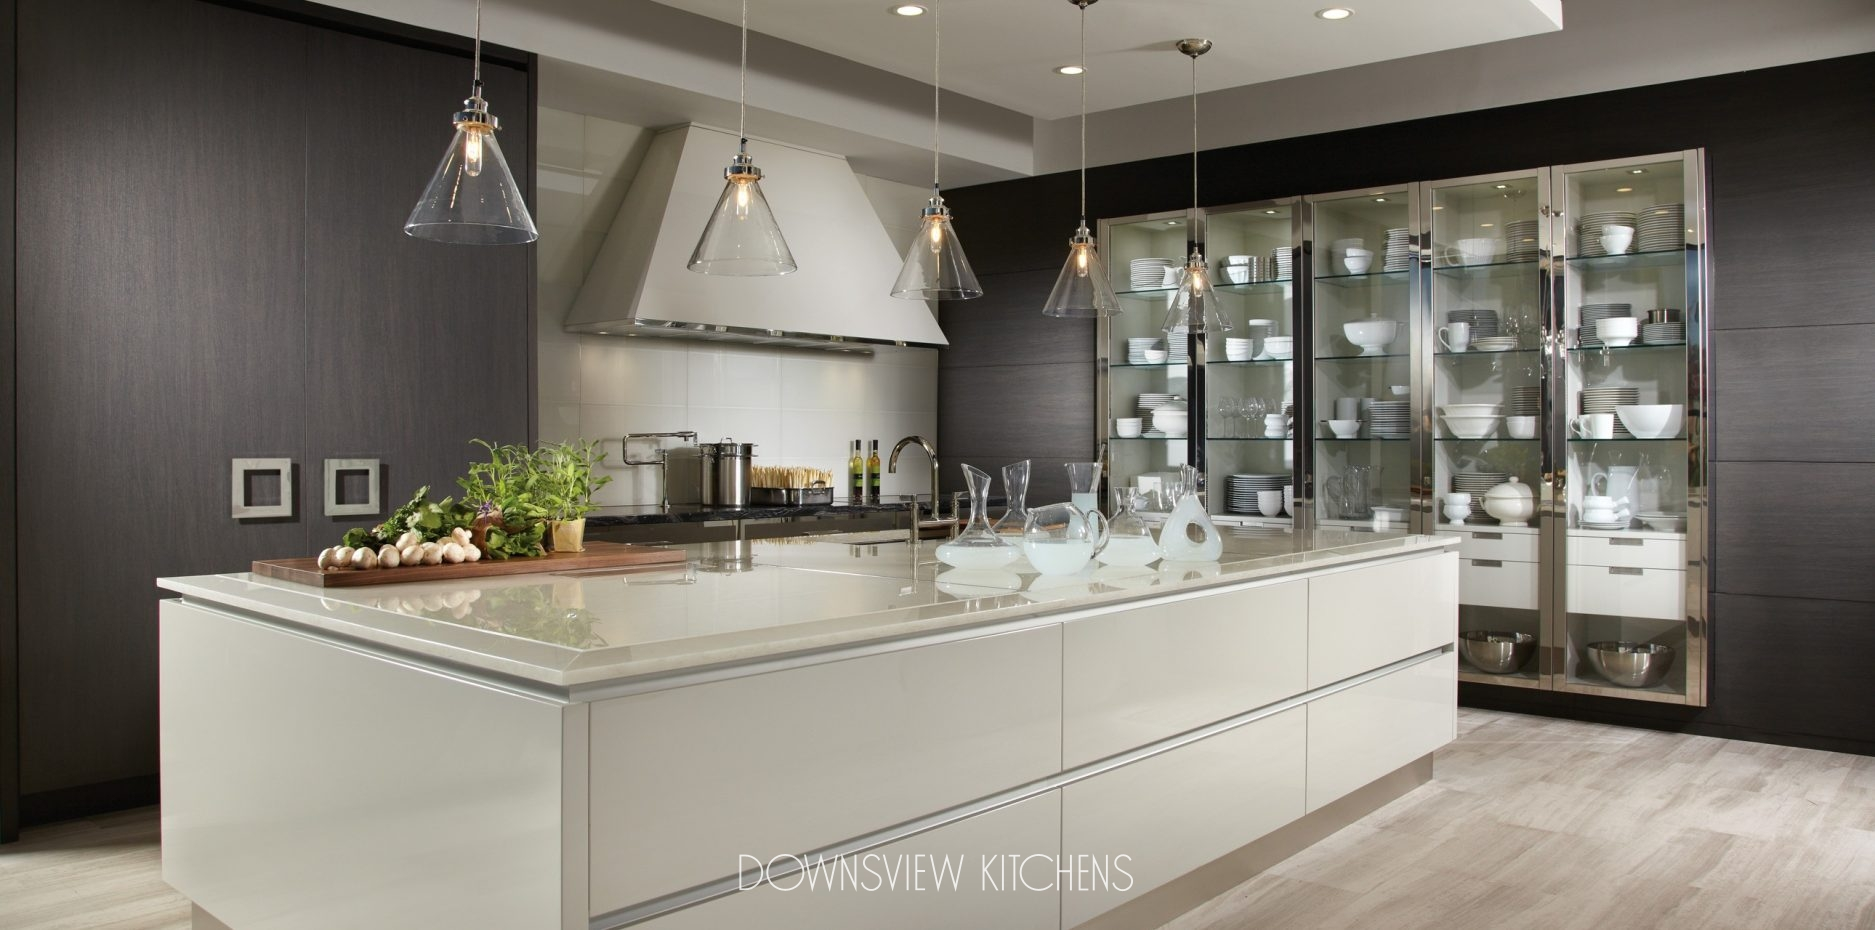 Bon MODERN REFLECTIONS   Downsview Kitchens And Fine Custom Cabinetry |  Manufacturers Of Custom Kitchen Cabinets